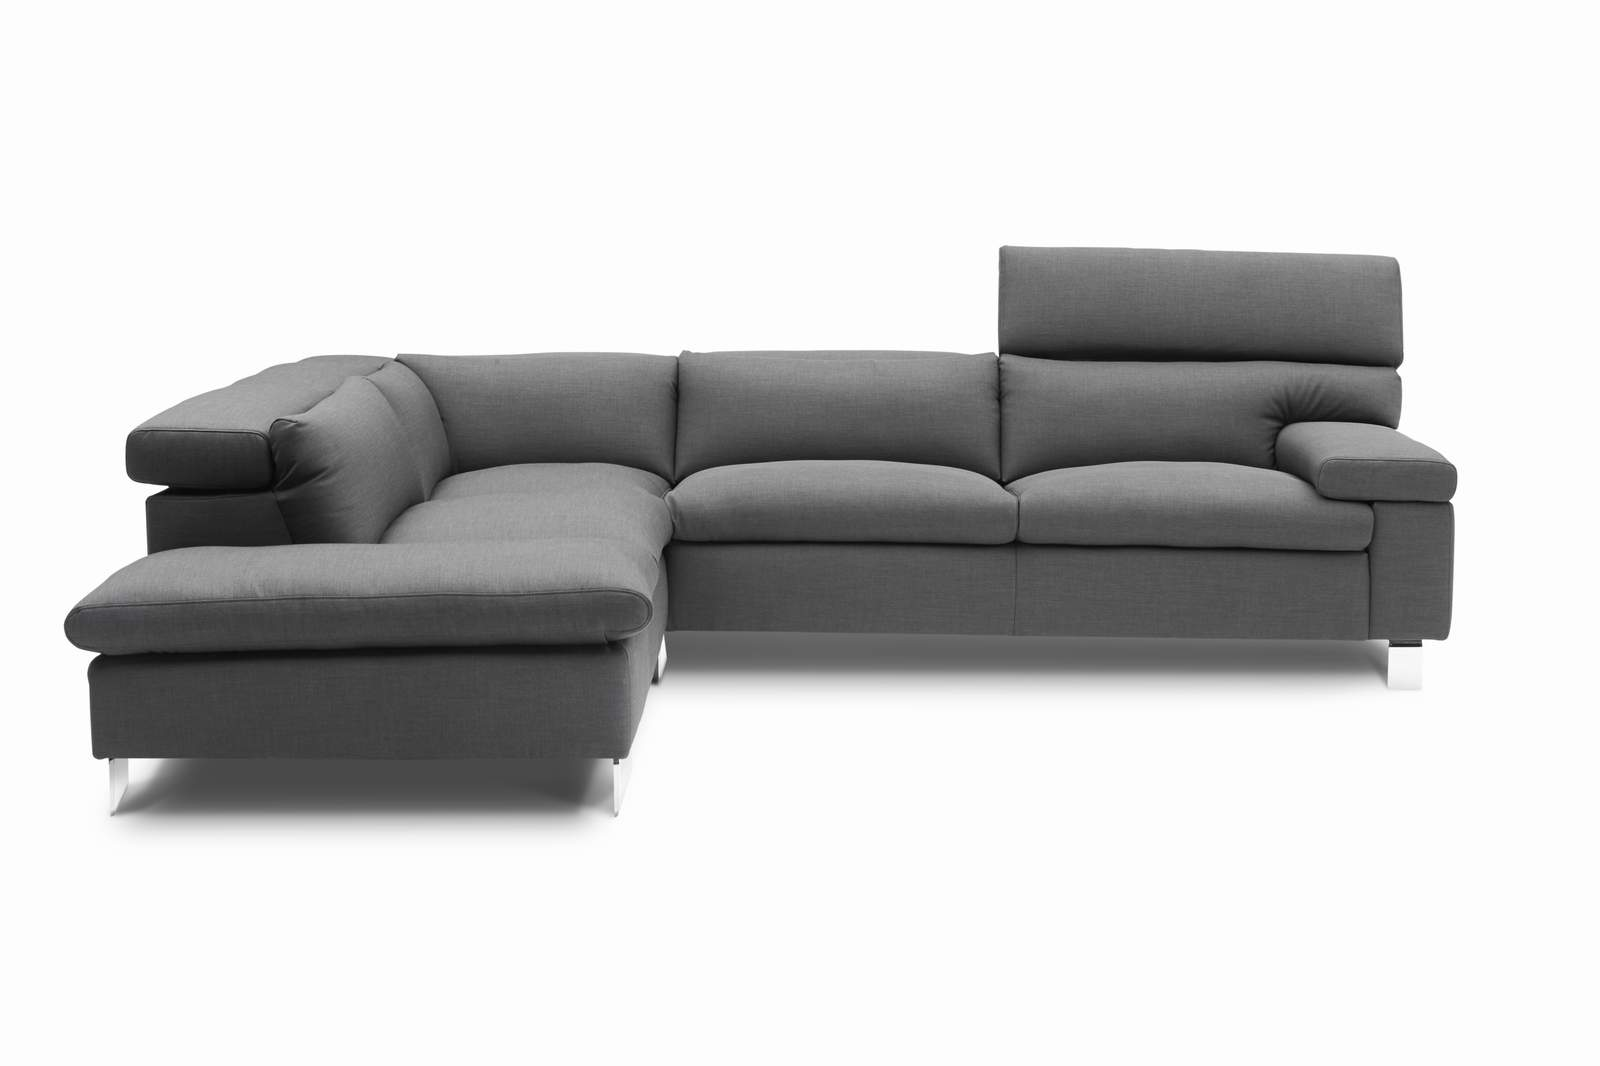 ewald schillig sofa beautiful nun haben wir einen hersteller gefunden der einige polstermbel. Black Bedroom Furniture Sets. Home Design Ideas